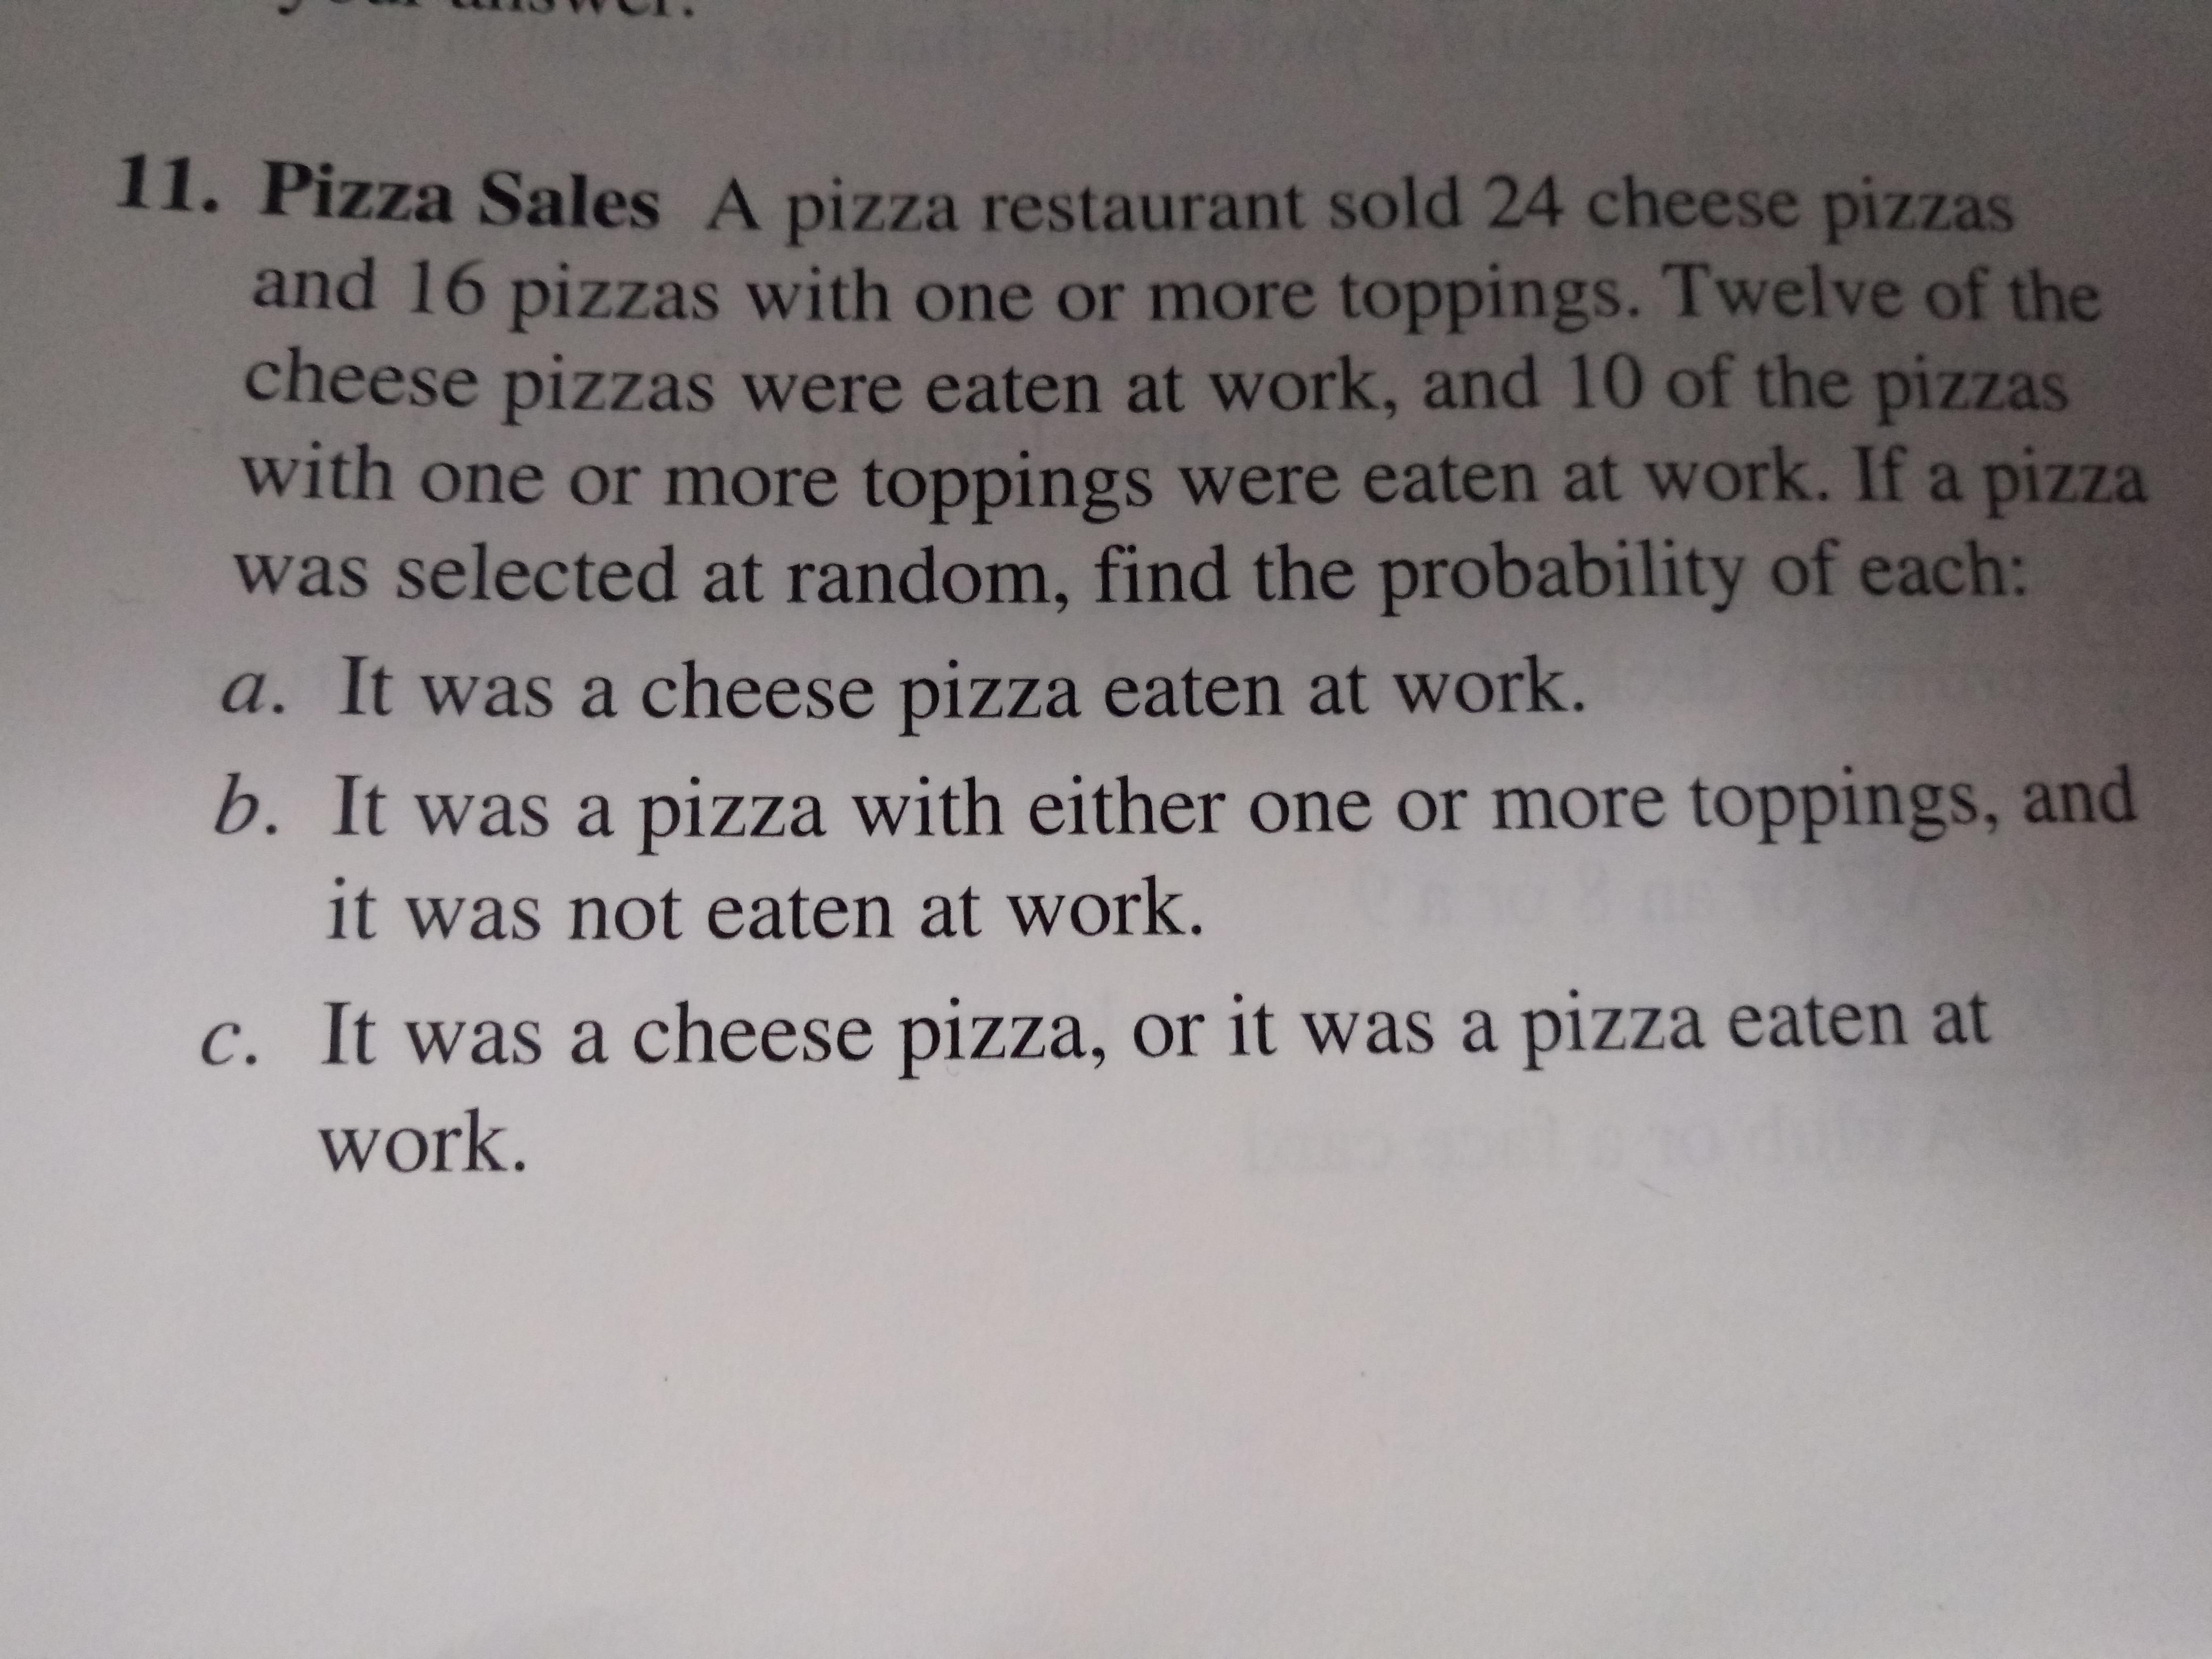 11. Pizza Sales A pizza restaurant sold 24 cheese pizzas and 16 pizzas with one or more toppings. Twelve of the cheese pizzas were eaten at work, and 10 of the pizzas with one or more toppings were eaten at work. If a pizza was selected at random, find the probability of each: a. It was a cheese pizza eaten at work. b. It was a pizza with either one or more toppings, and it was not eaten at work. c. It was a cheese pizza, or it was a pizza eaten at work.